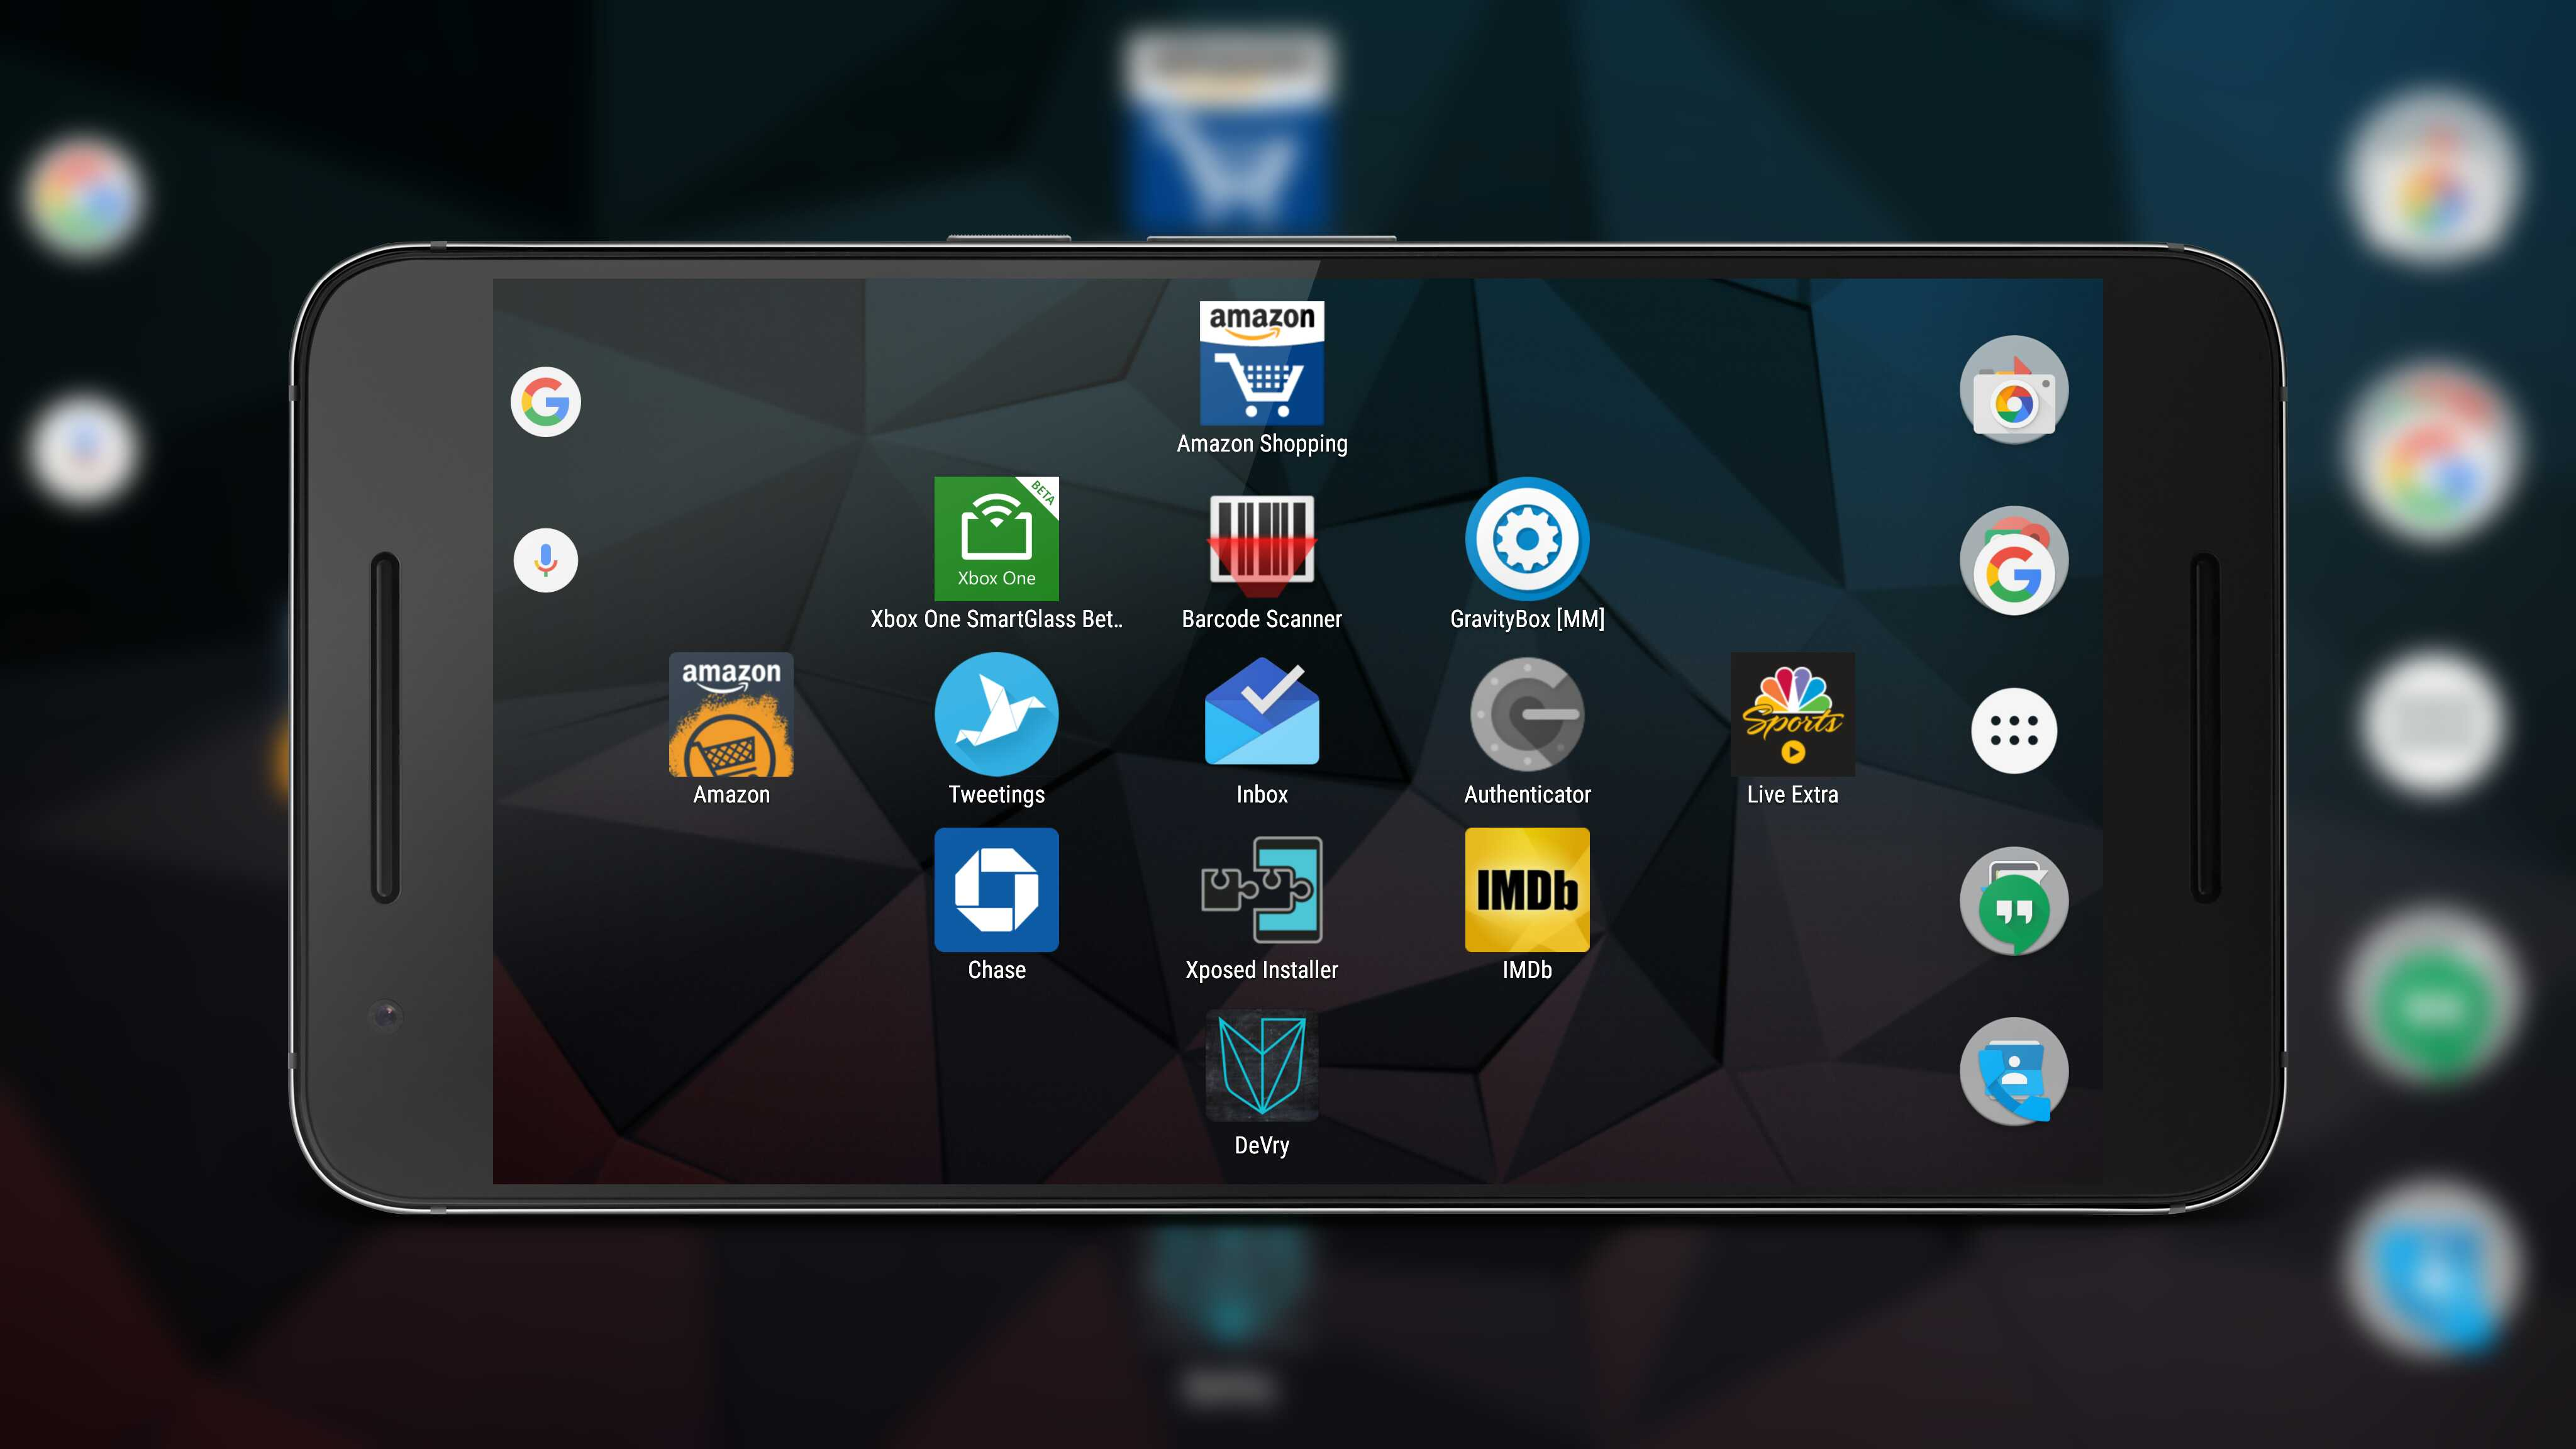 Day One Apps: The first apps we install on every new Android